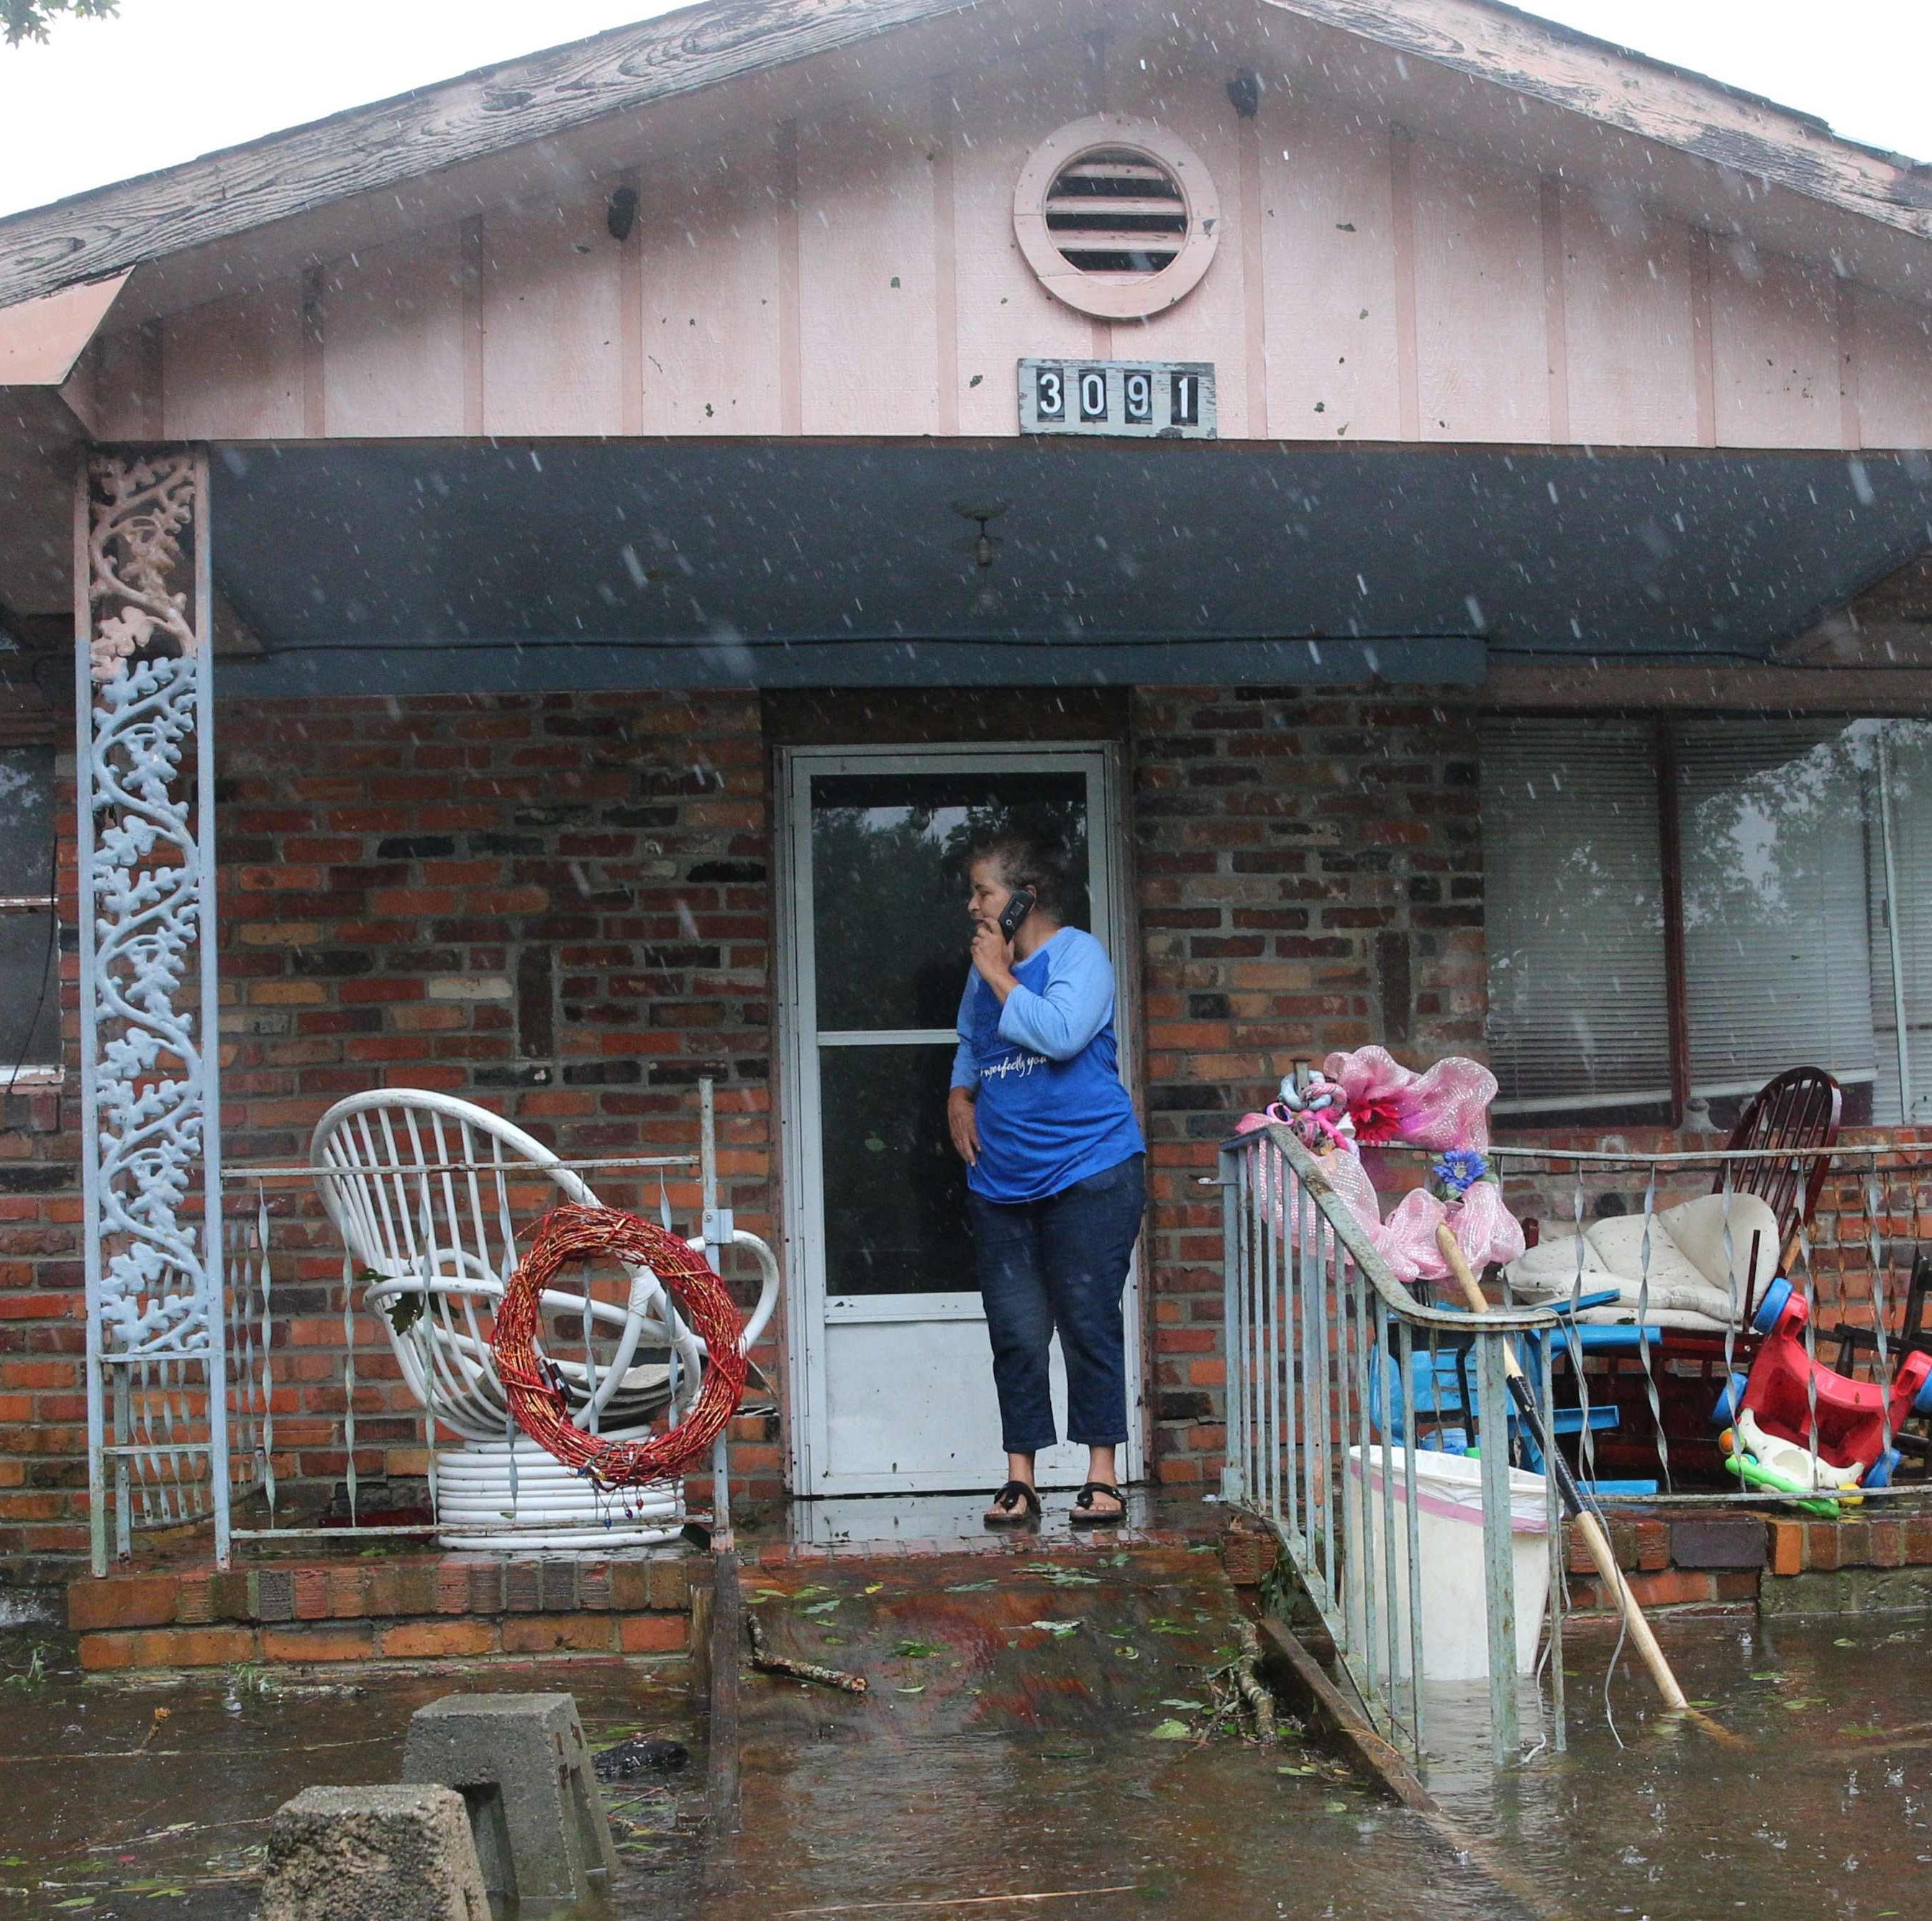 A woman on a cellphone calls for help at her flooded residence in Lumberton, N.C., on Sept. 15, 2018, after Tropical Storm Florence dumped relentless rain in the state. Members of the Cajun Navy came to her rescue.